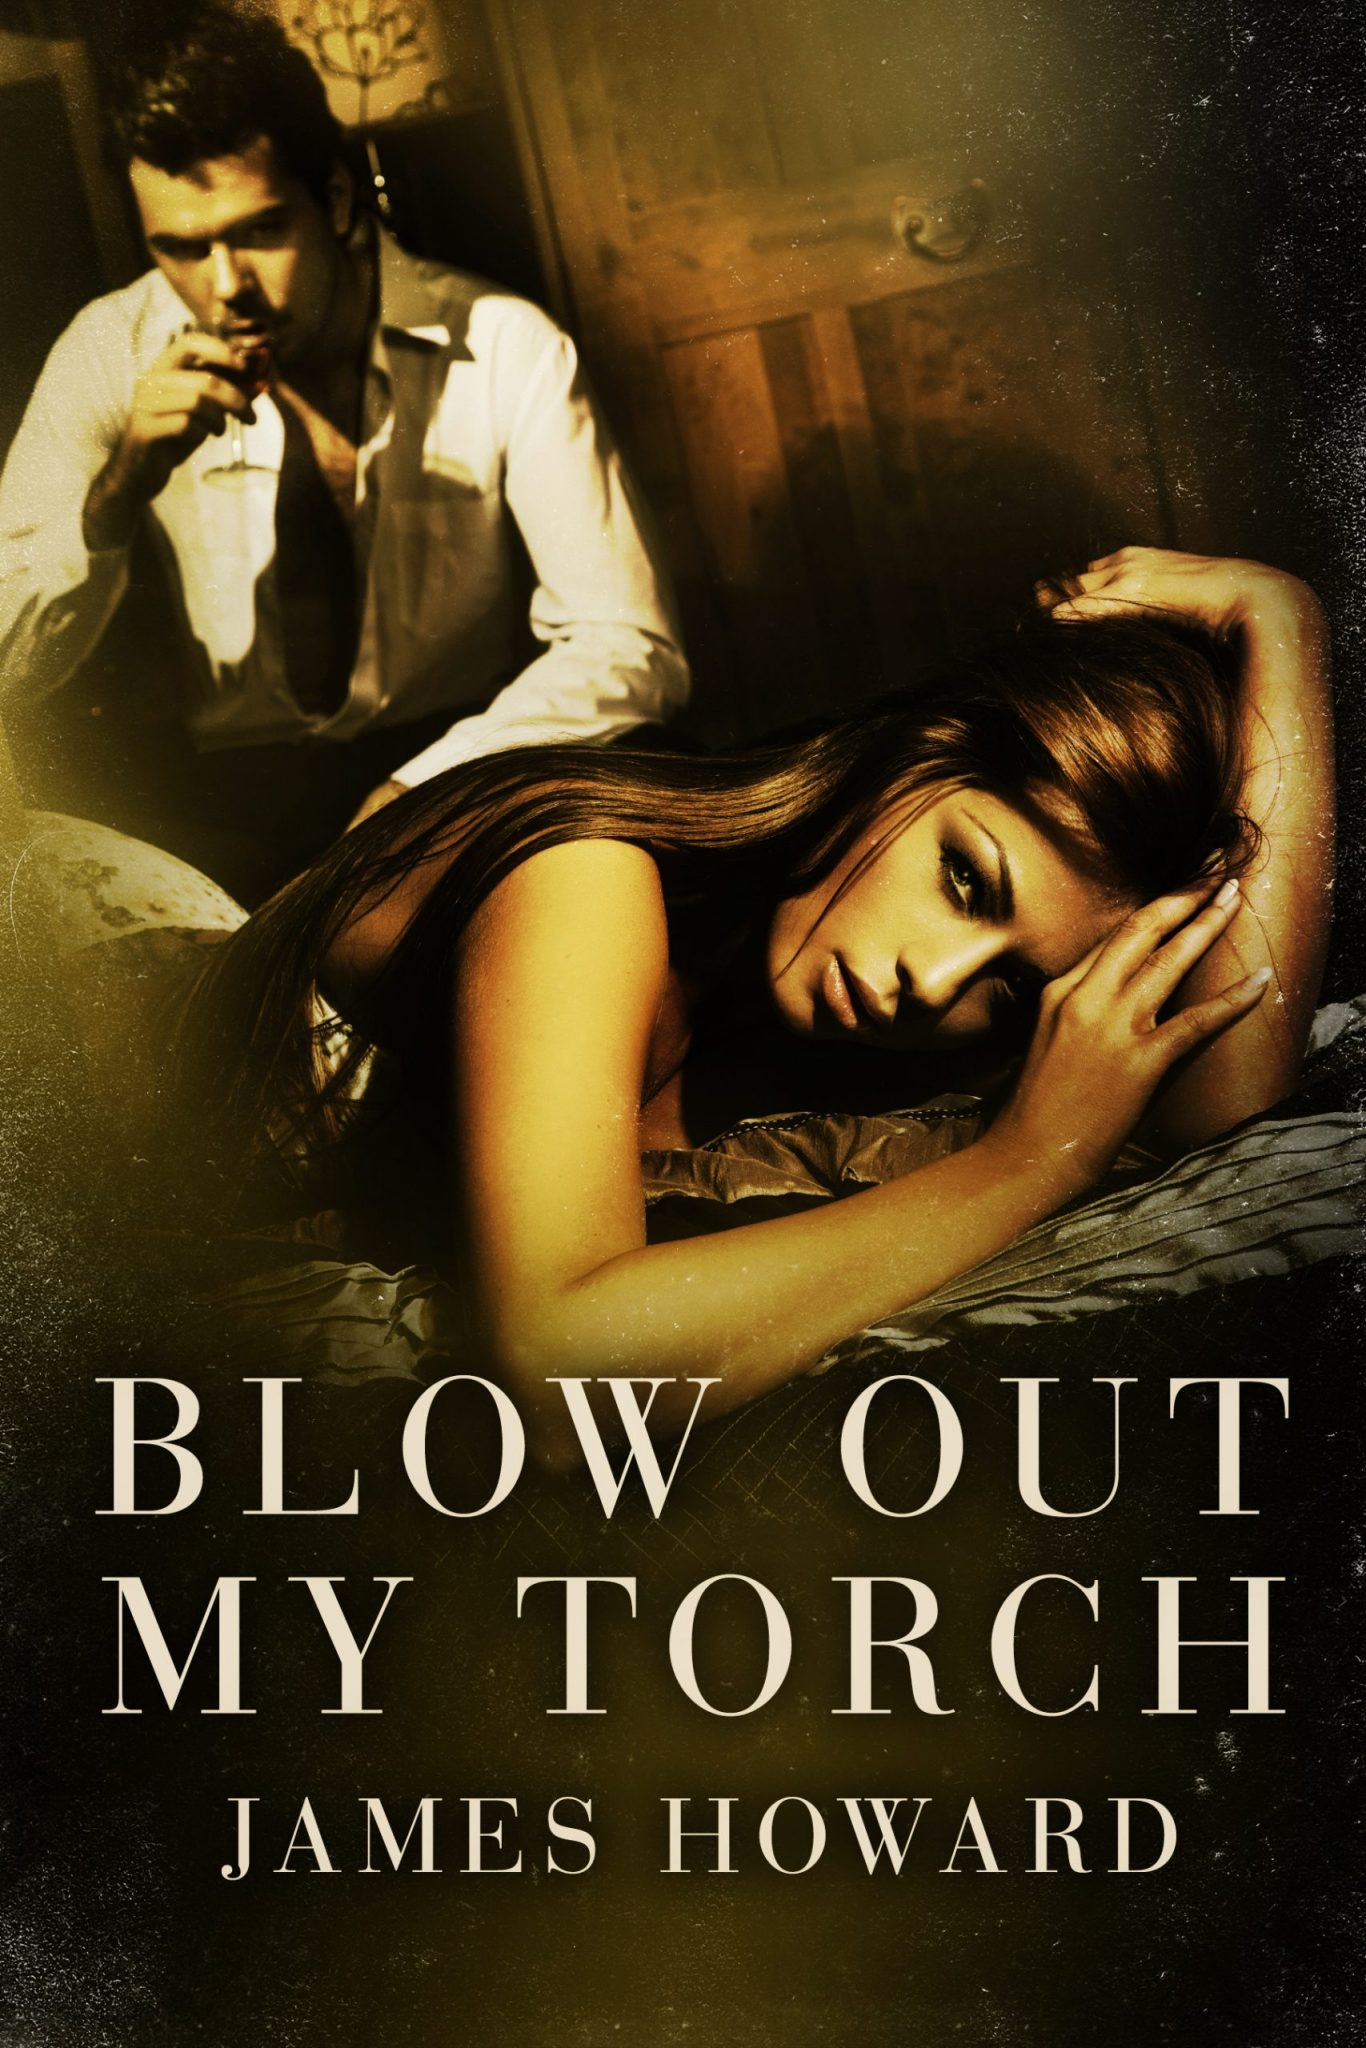 Blow Out My Torch by James Howard